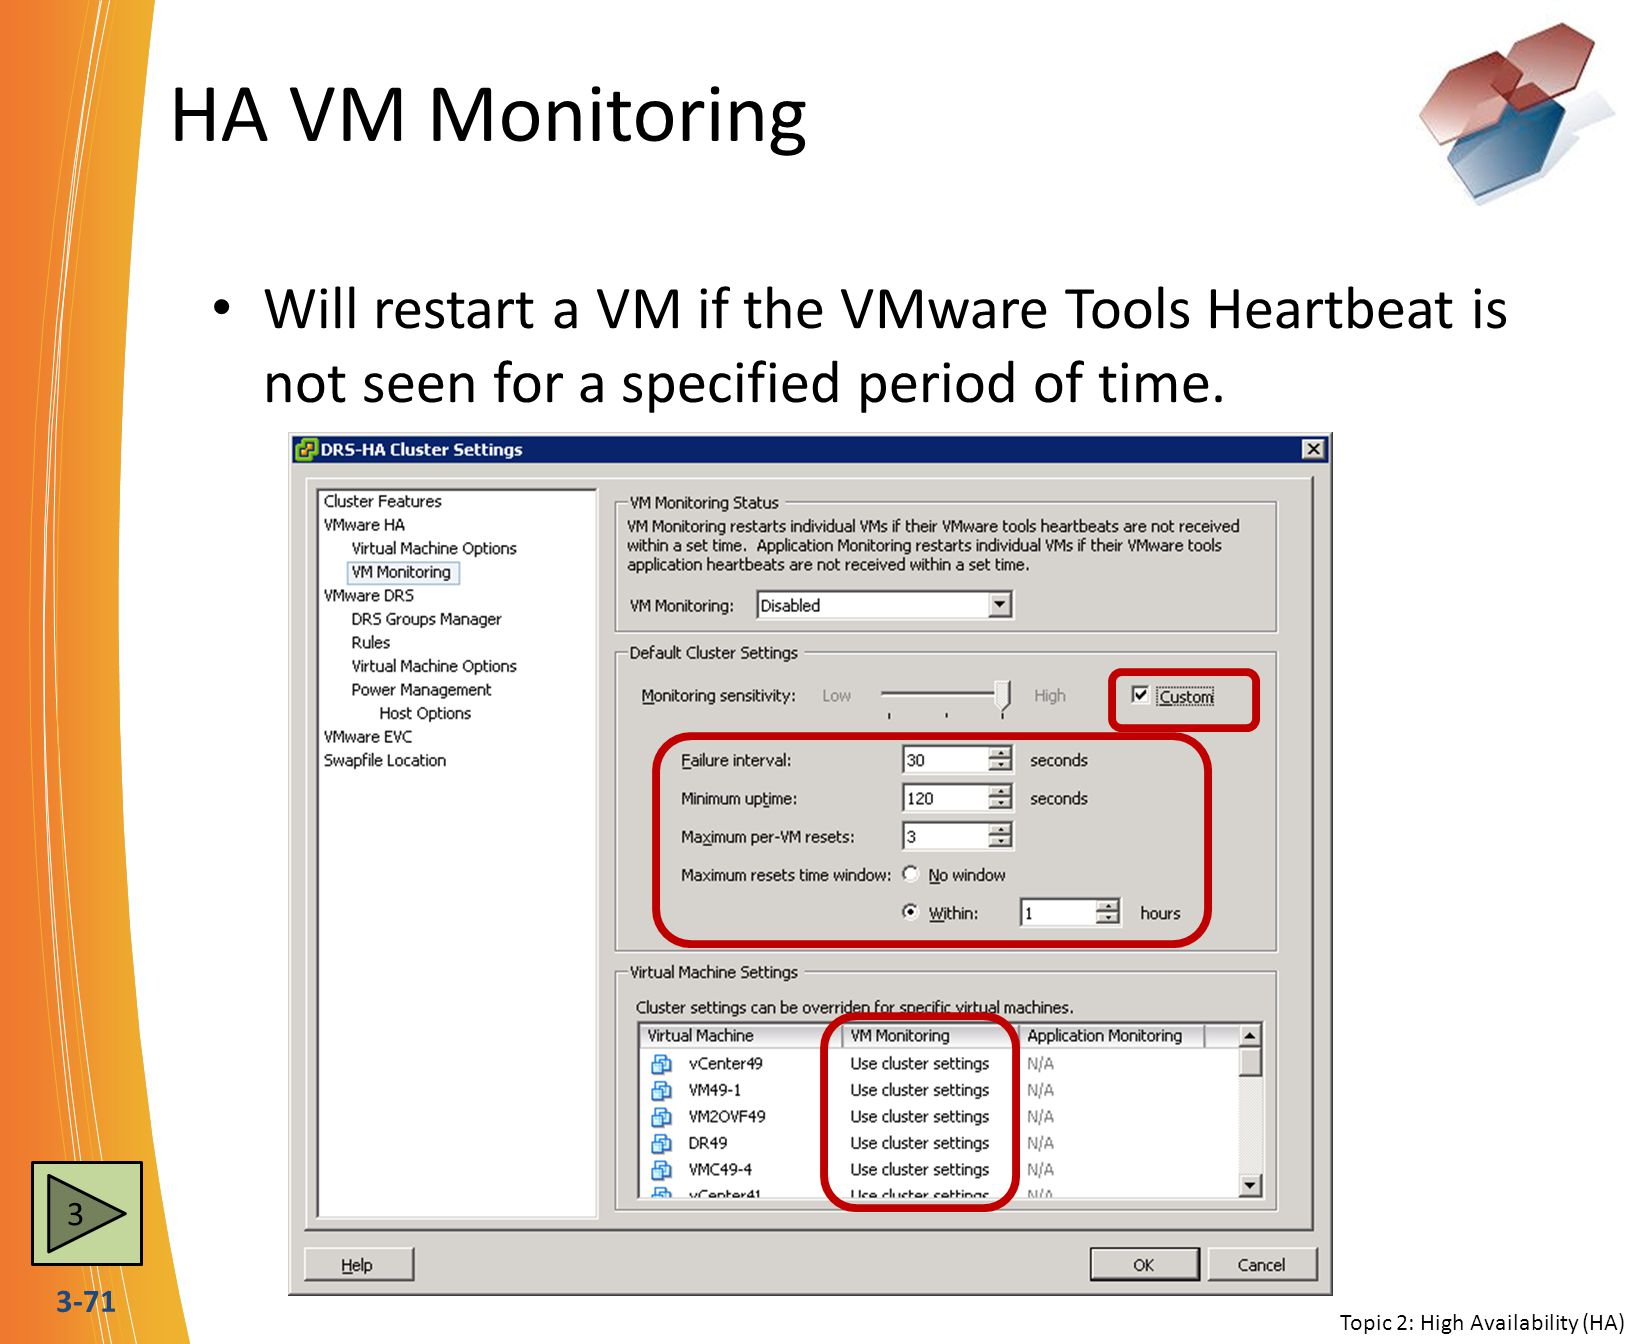 HA VM Monitoring Will restart a VM if the VMware Tools Heartbeat is not seen for a specified period of time.